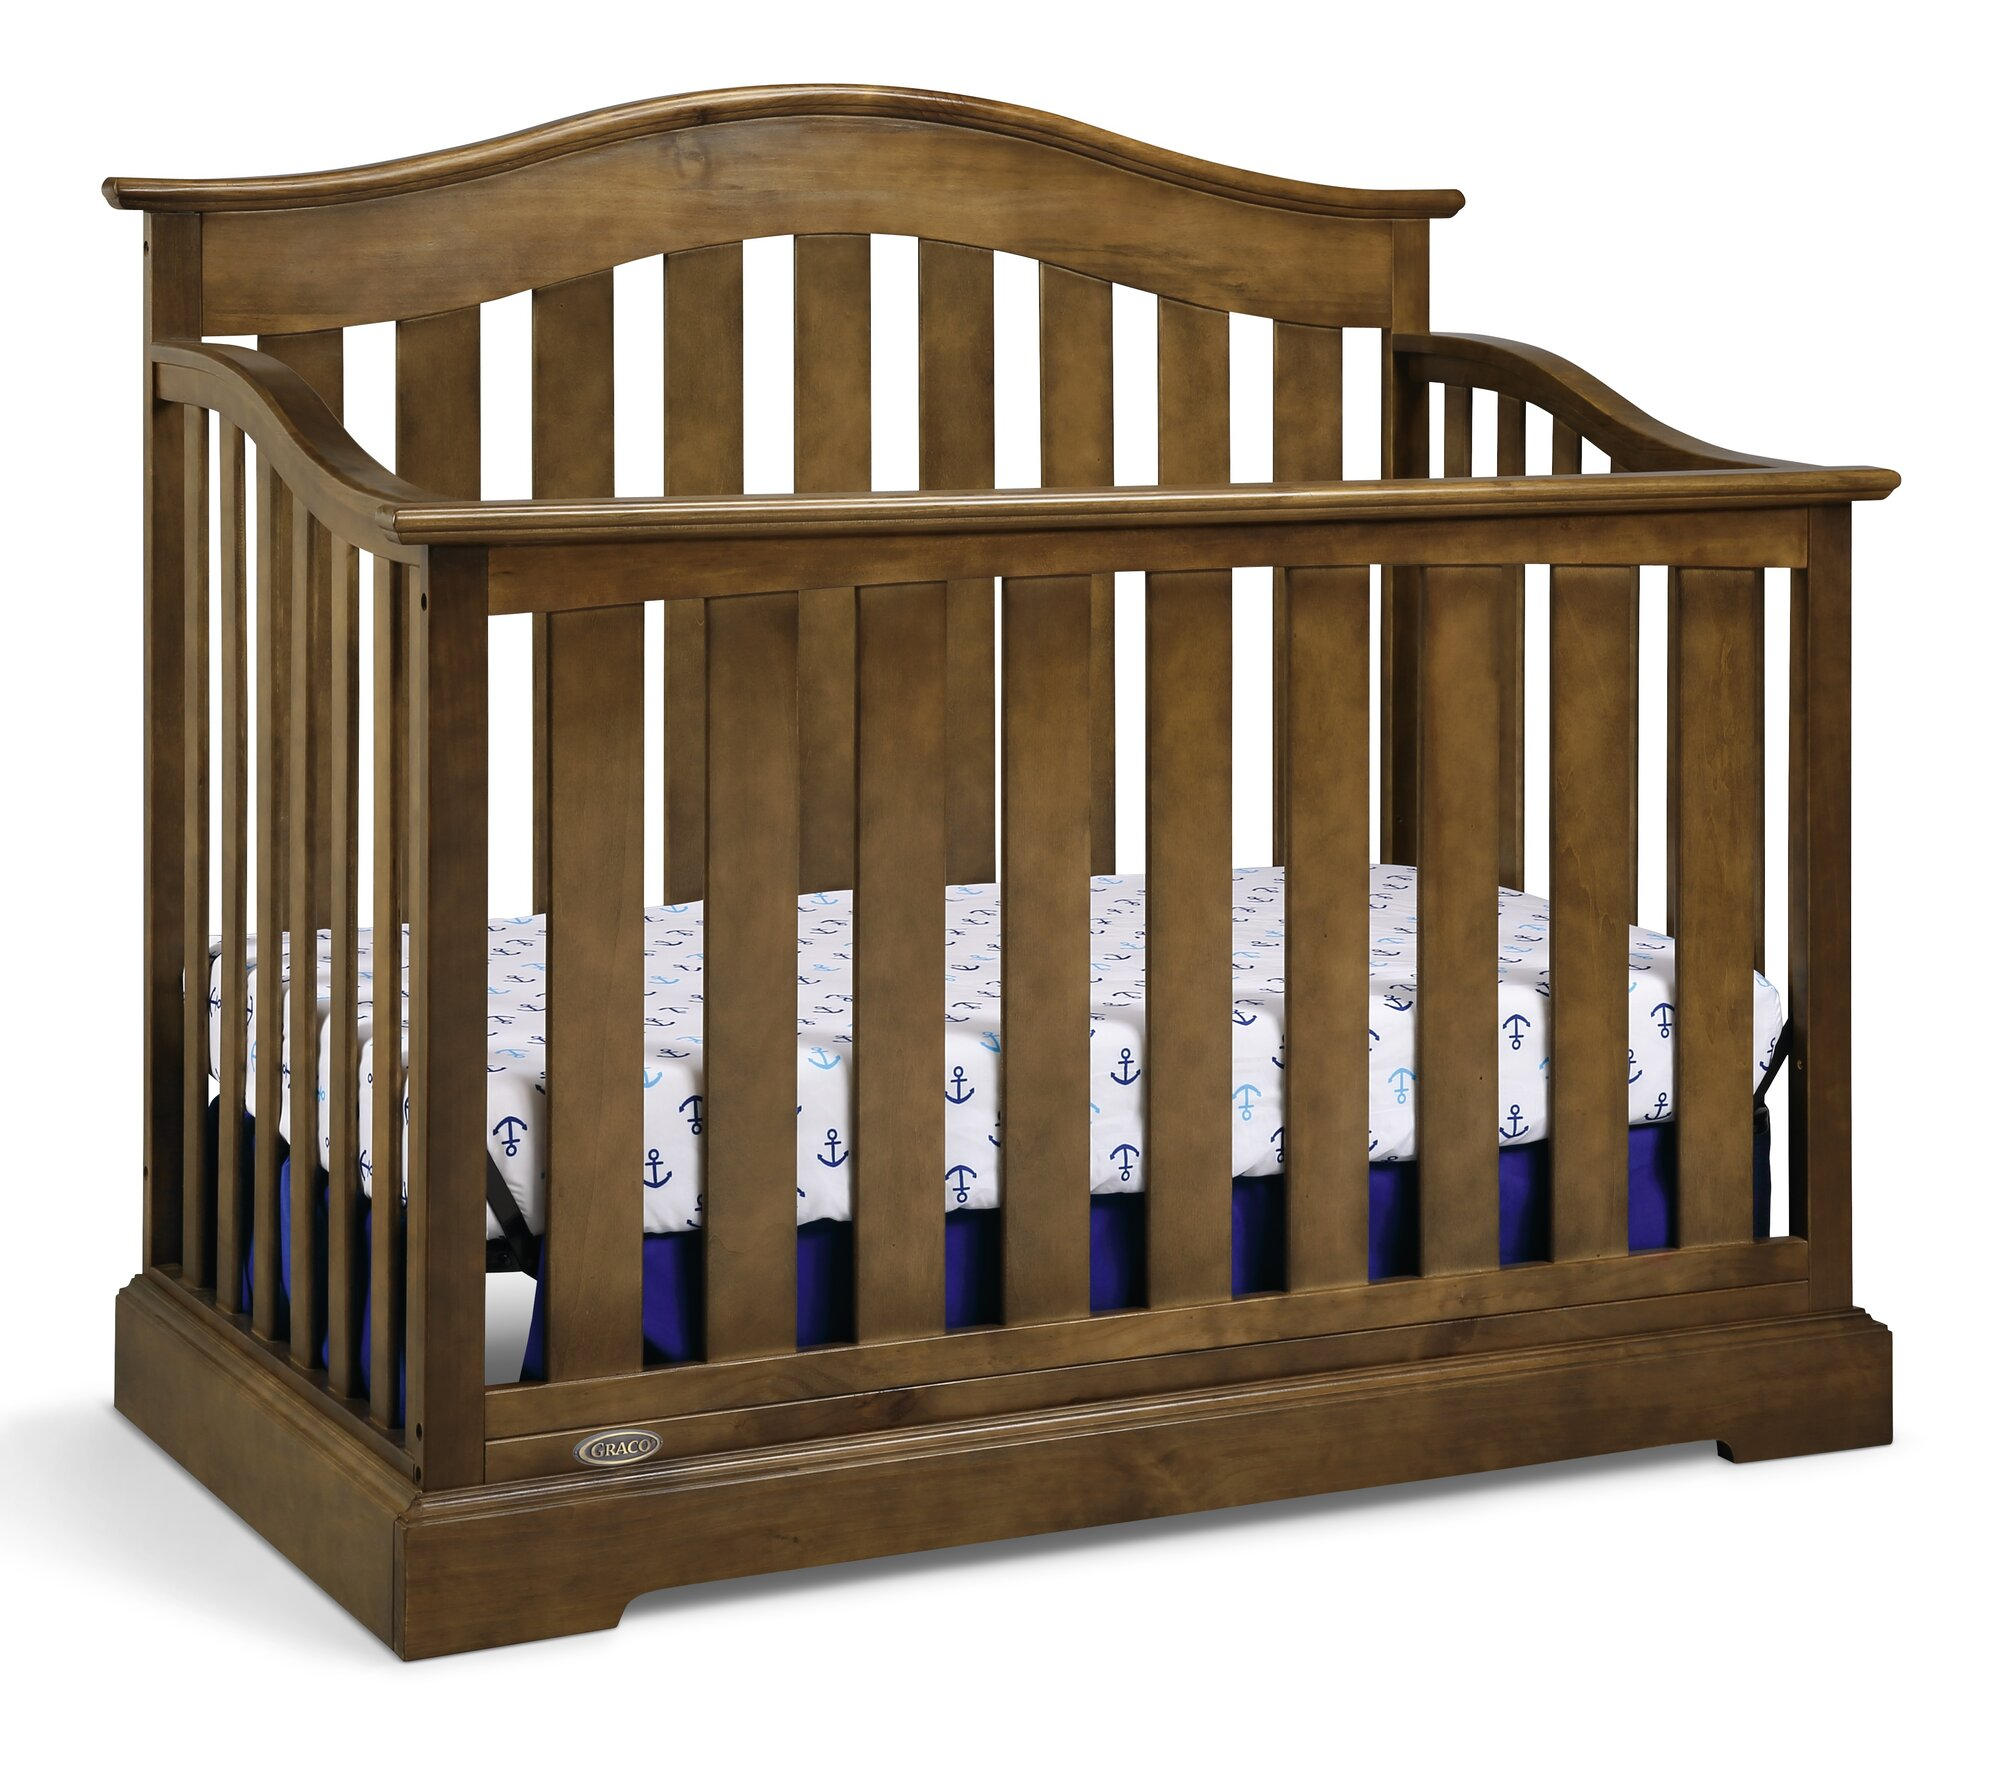 Graco 3 In 1 Convertible Crib: Graco Westbrook 4-in-1 Convertible Crib